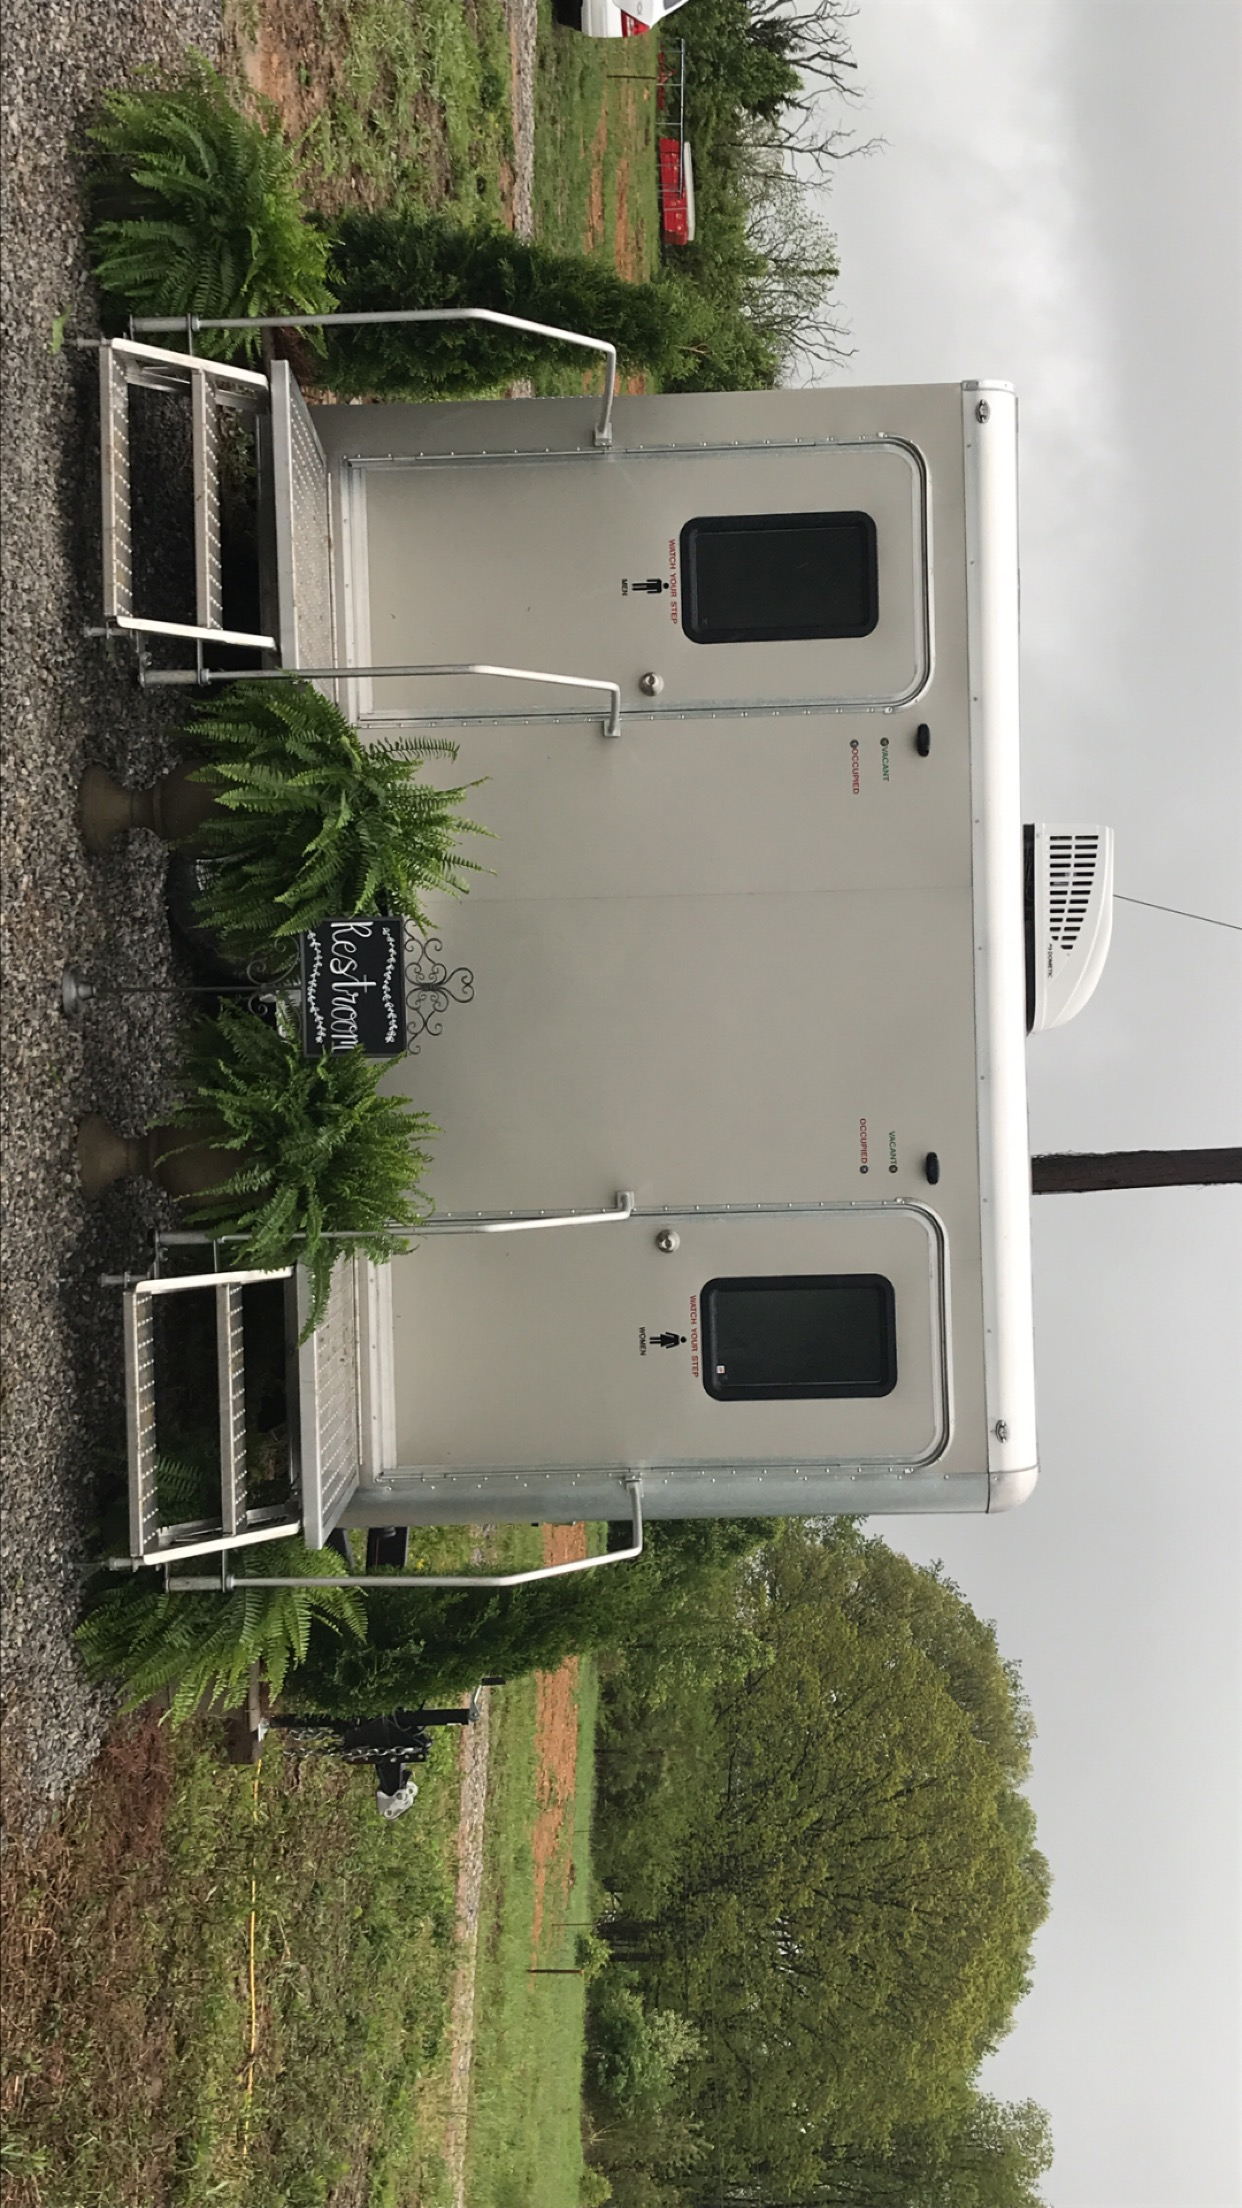 Portable restroom rentals in Nashville TN